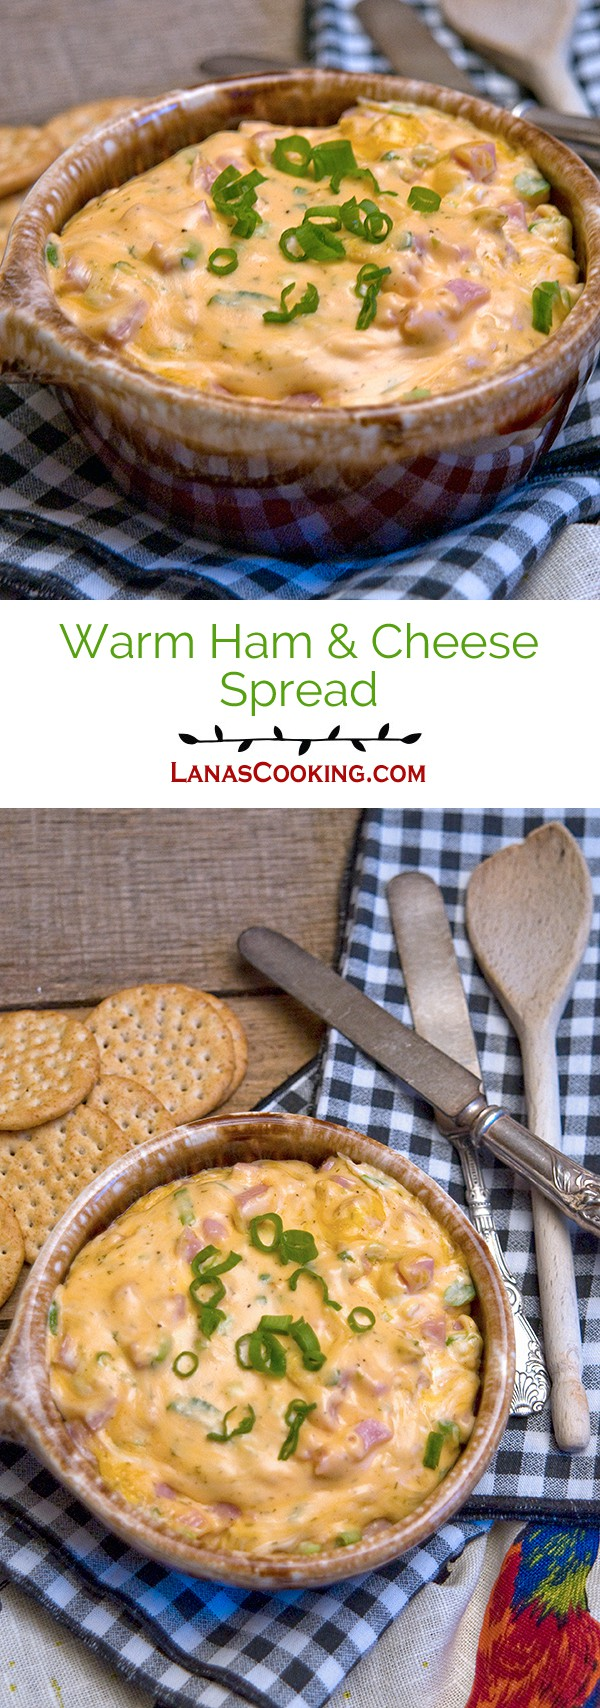 Warm Ham and Cheese Spread - it's like your favorite hot ham and cheese sandwich on a cracker! From @NevrEnoughThyme http://www.lanascooking.com/warm-ham-and-cheese-spread